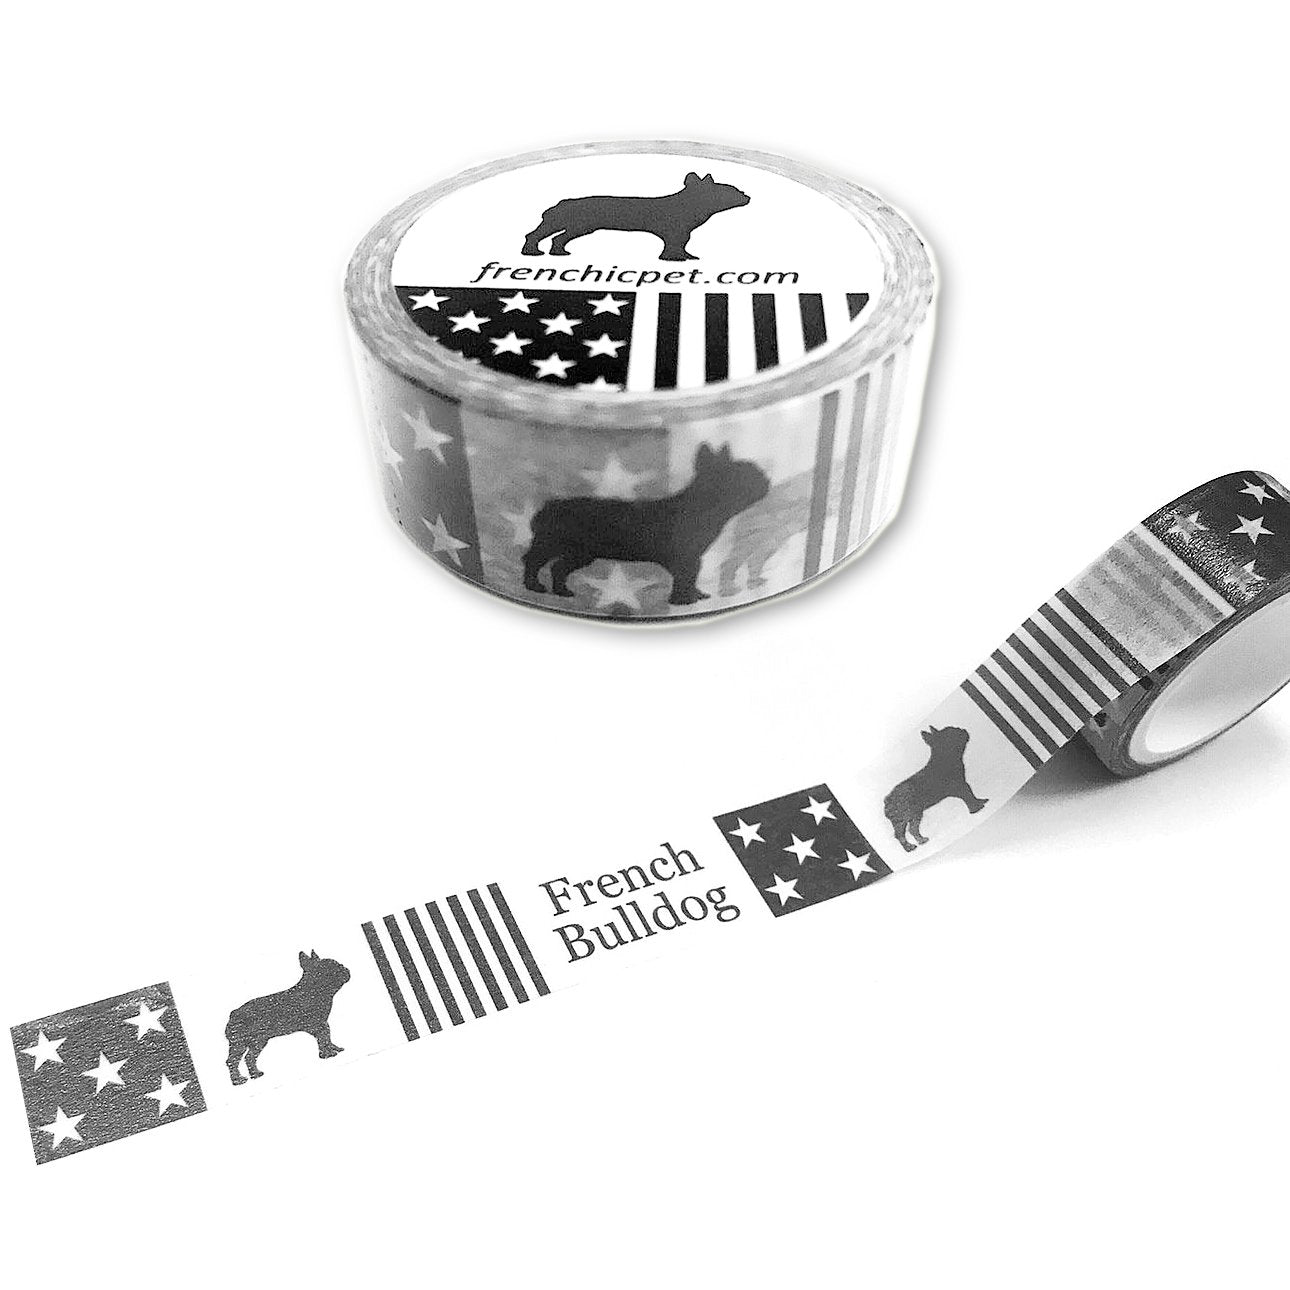 French Bulldog Masking Tape Star and Stripe Black White Classic Pattern Decoration Paper Craft Card Washi Paper Material Frenchic